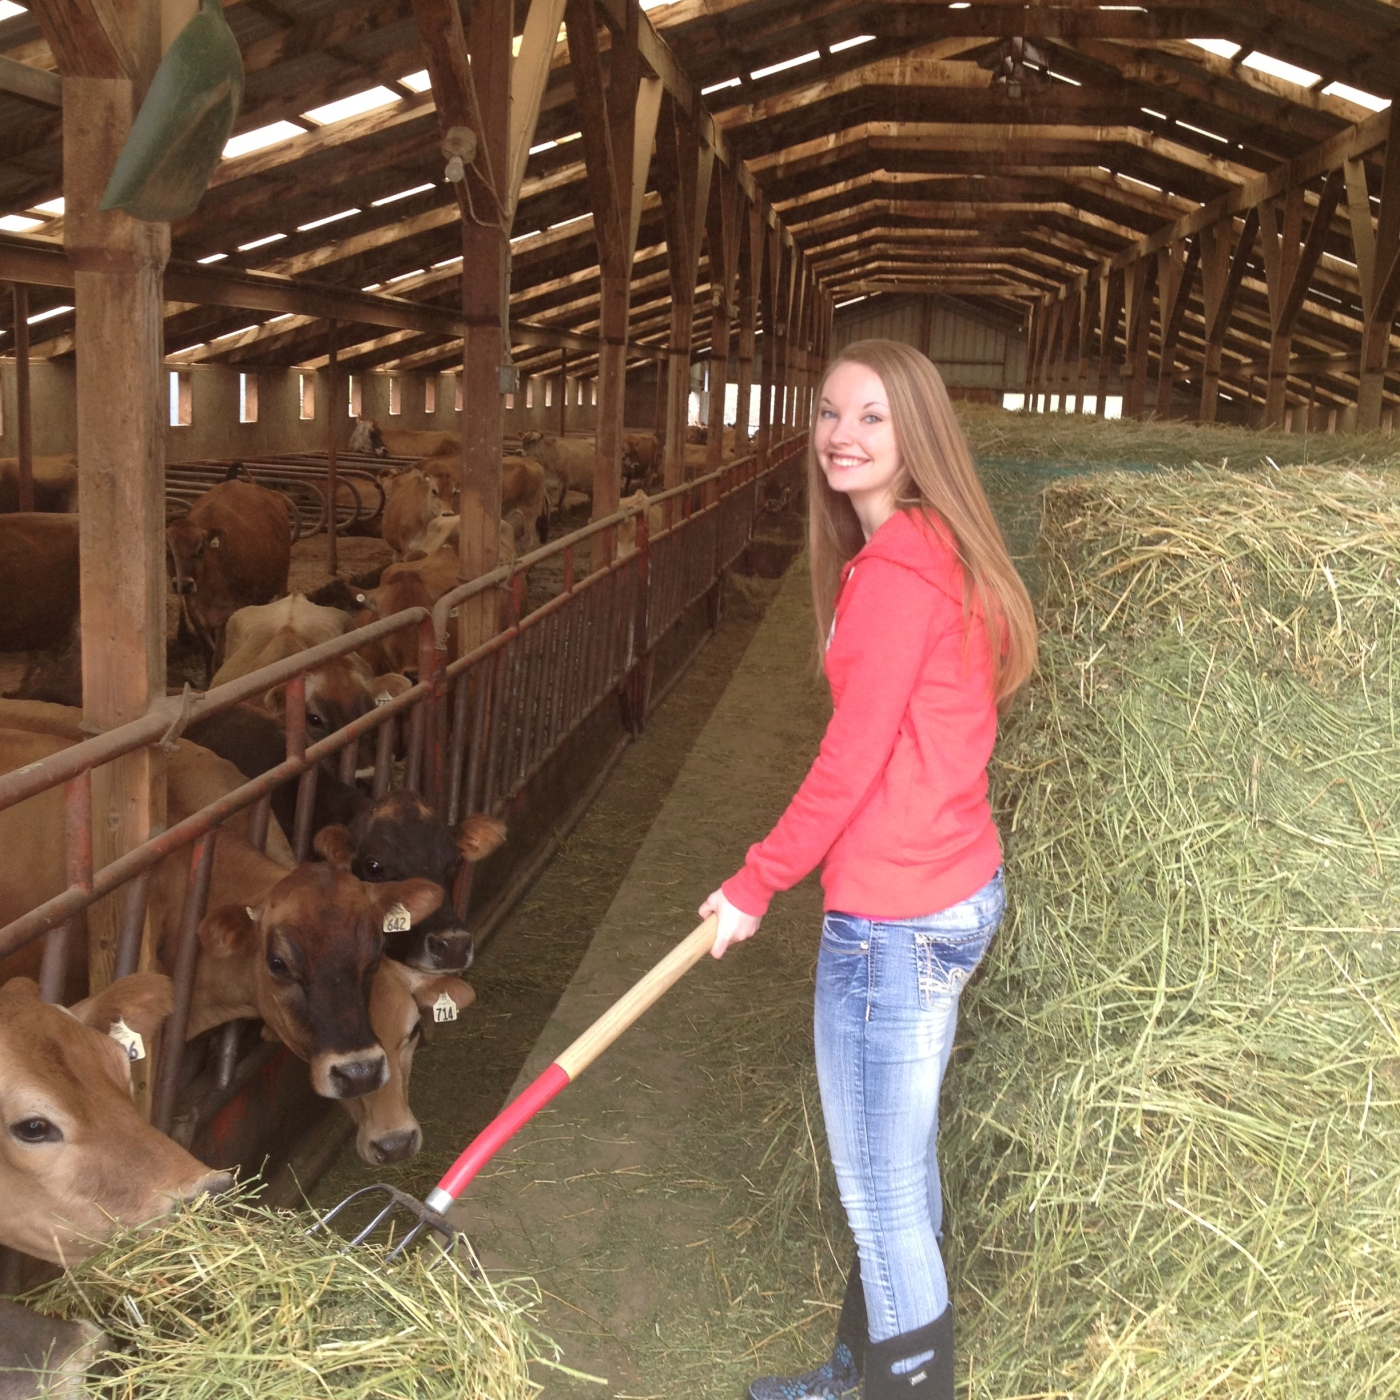 girl feeds cows hay